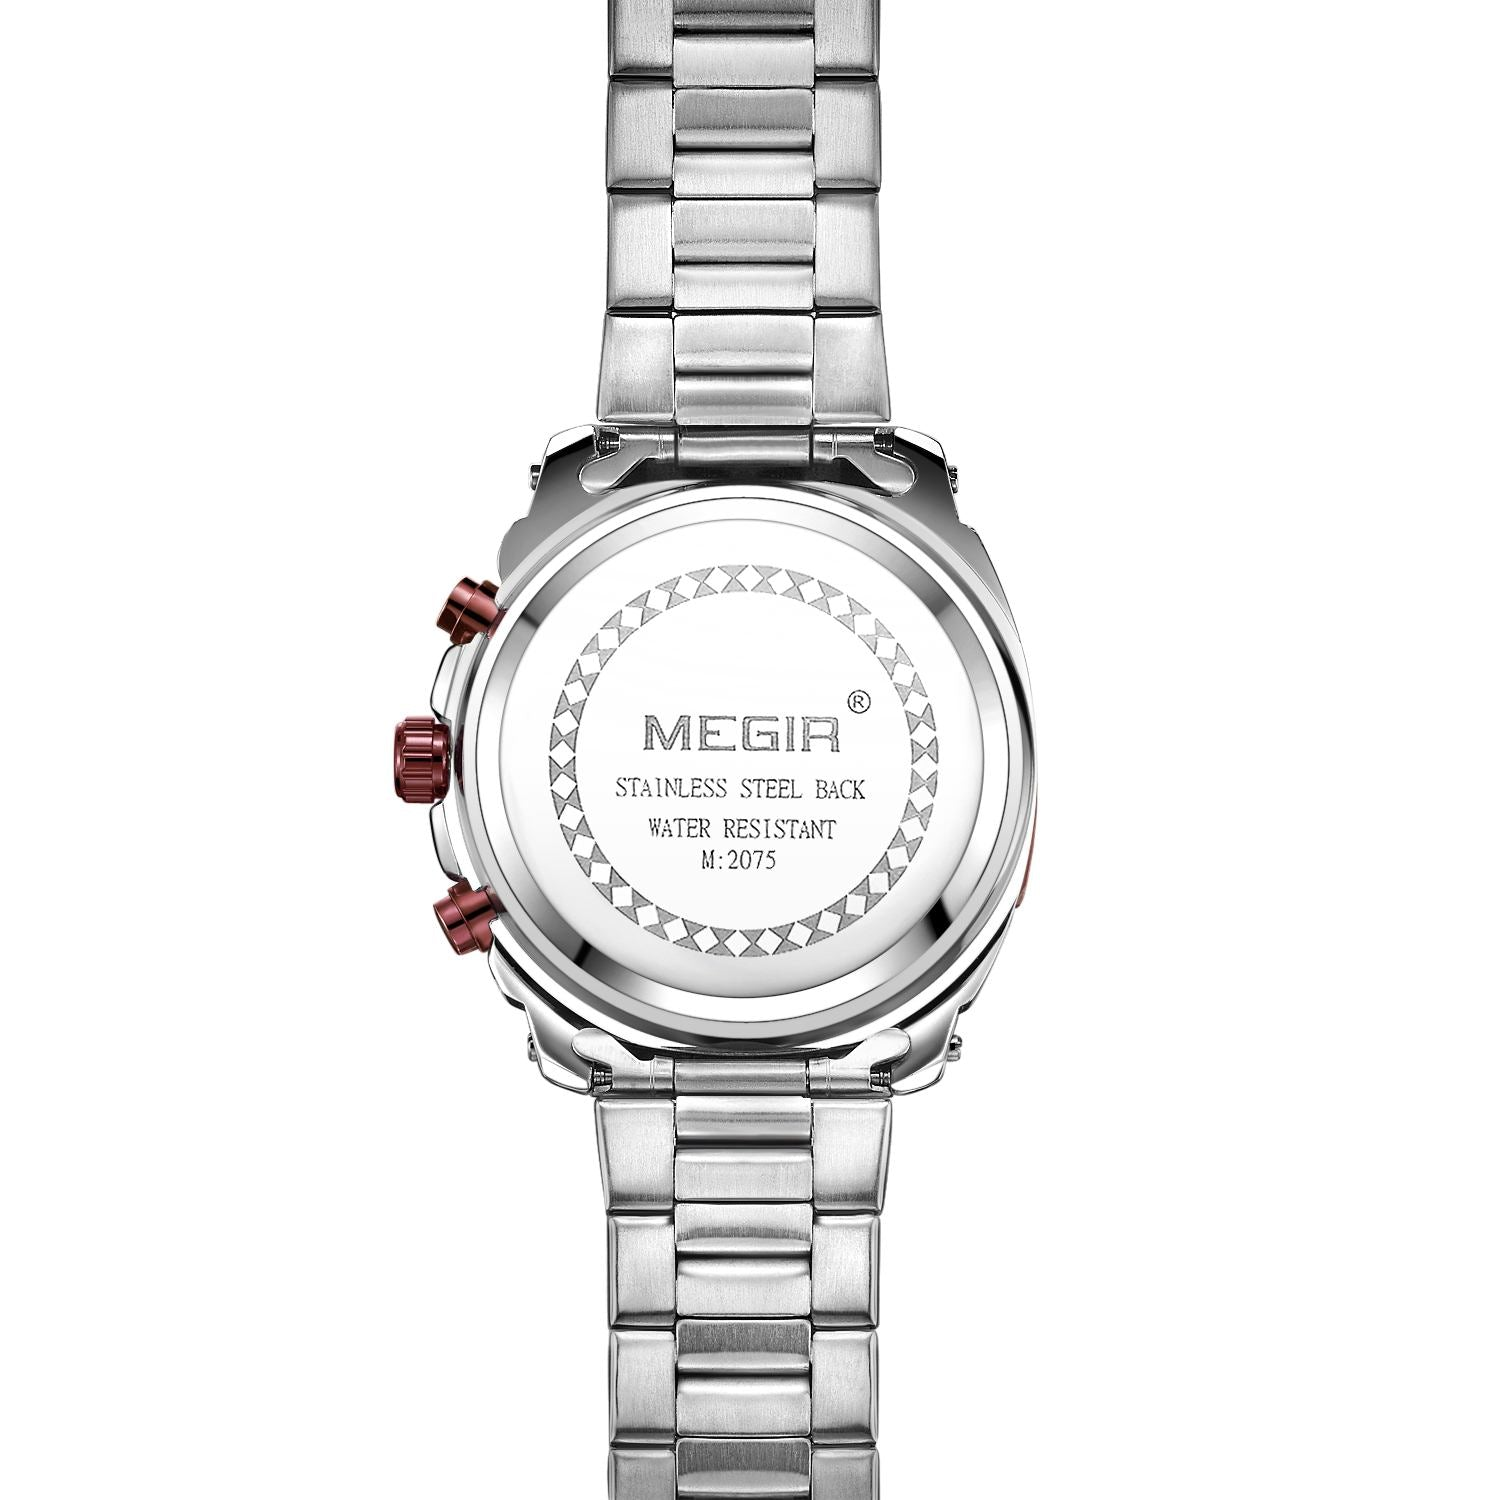 MEGIR men's quartz chronograph watch 2075 - MEGIR